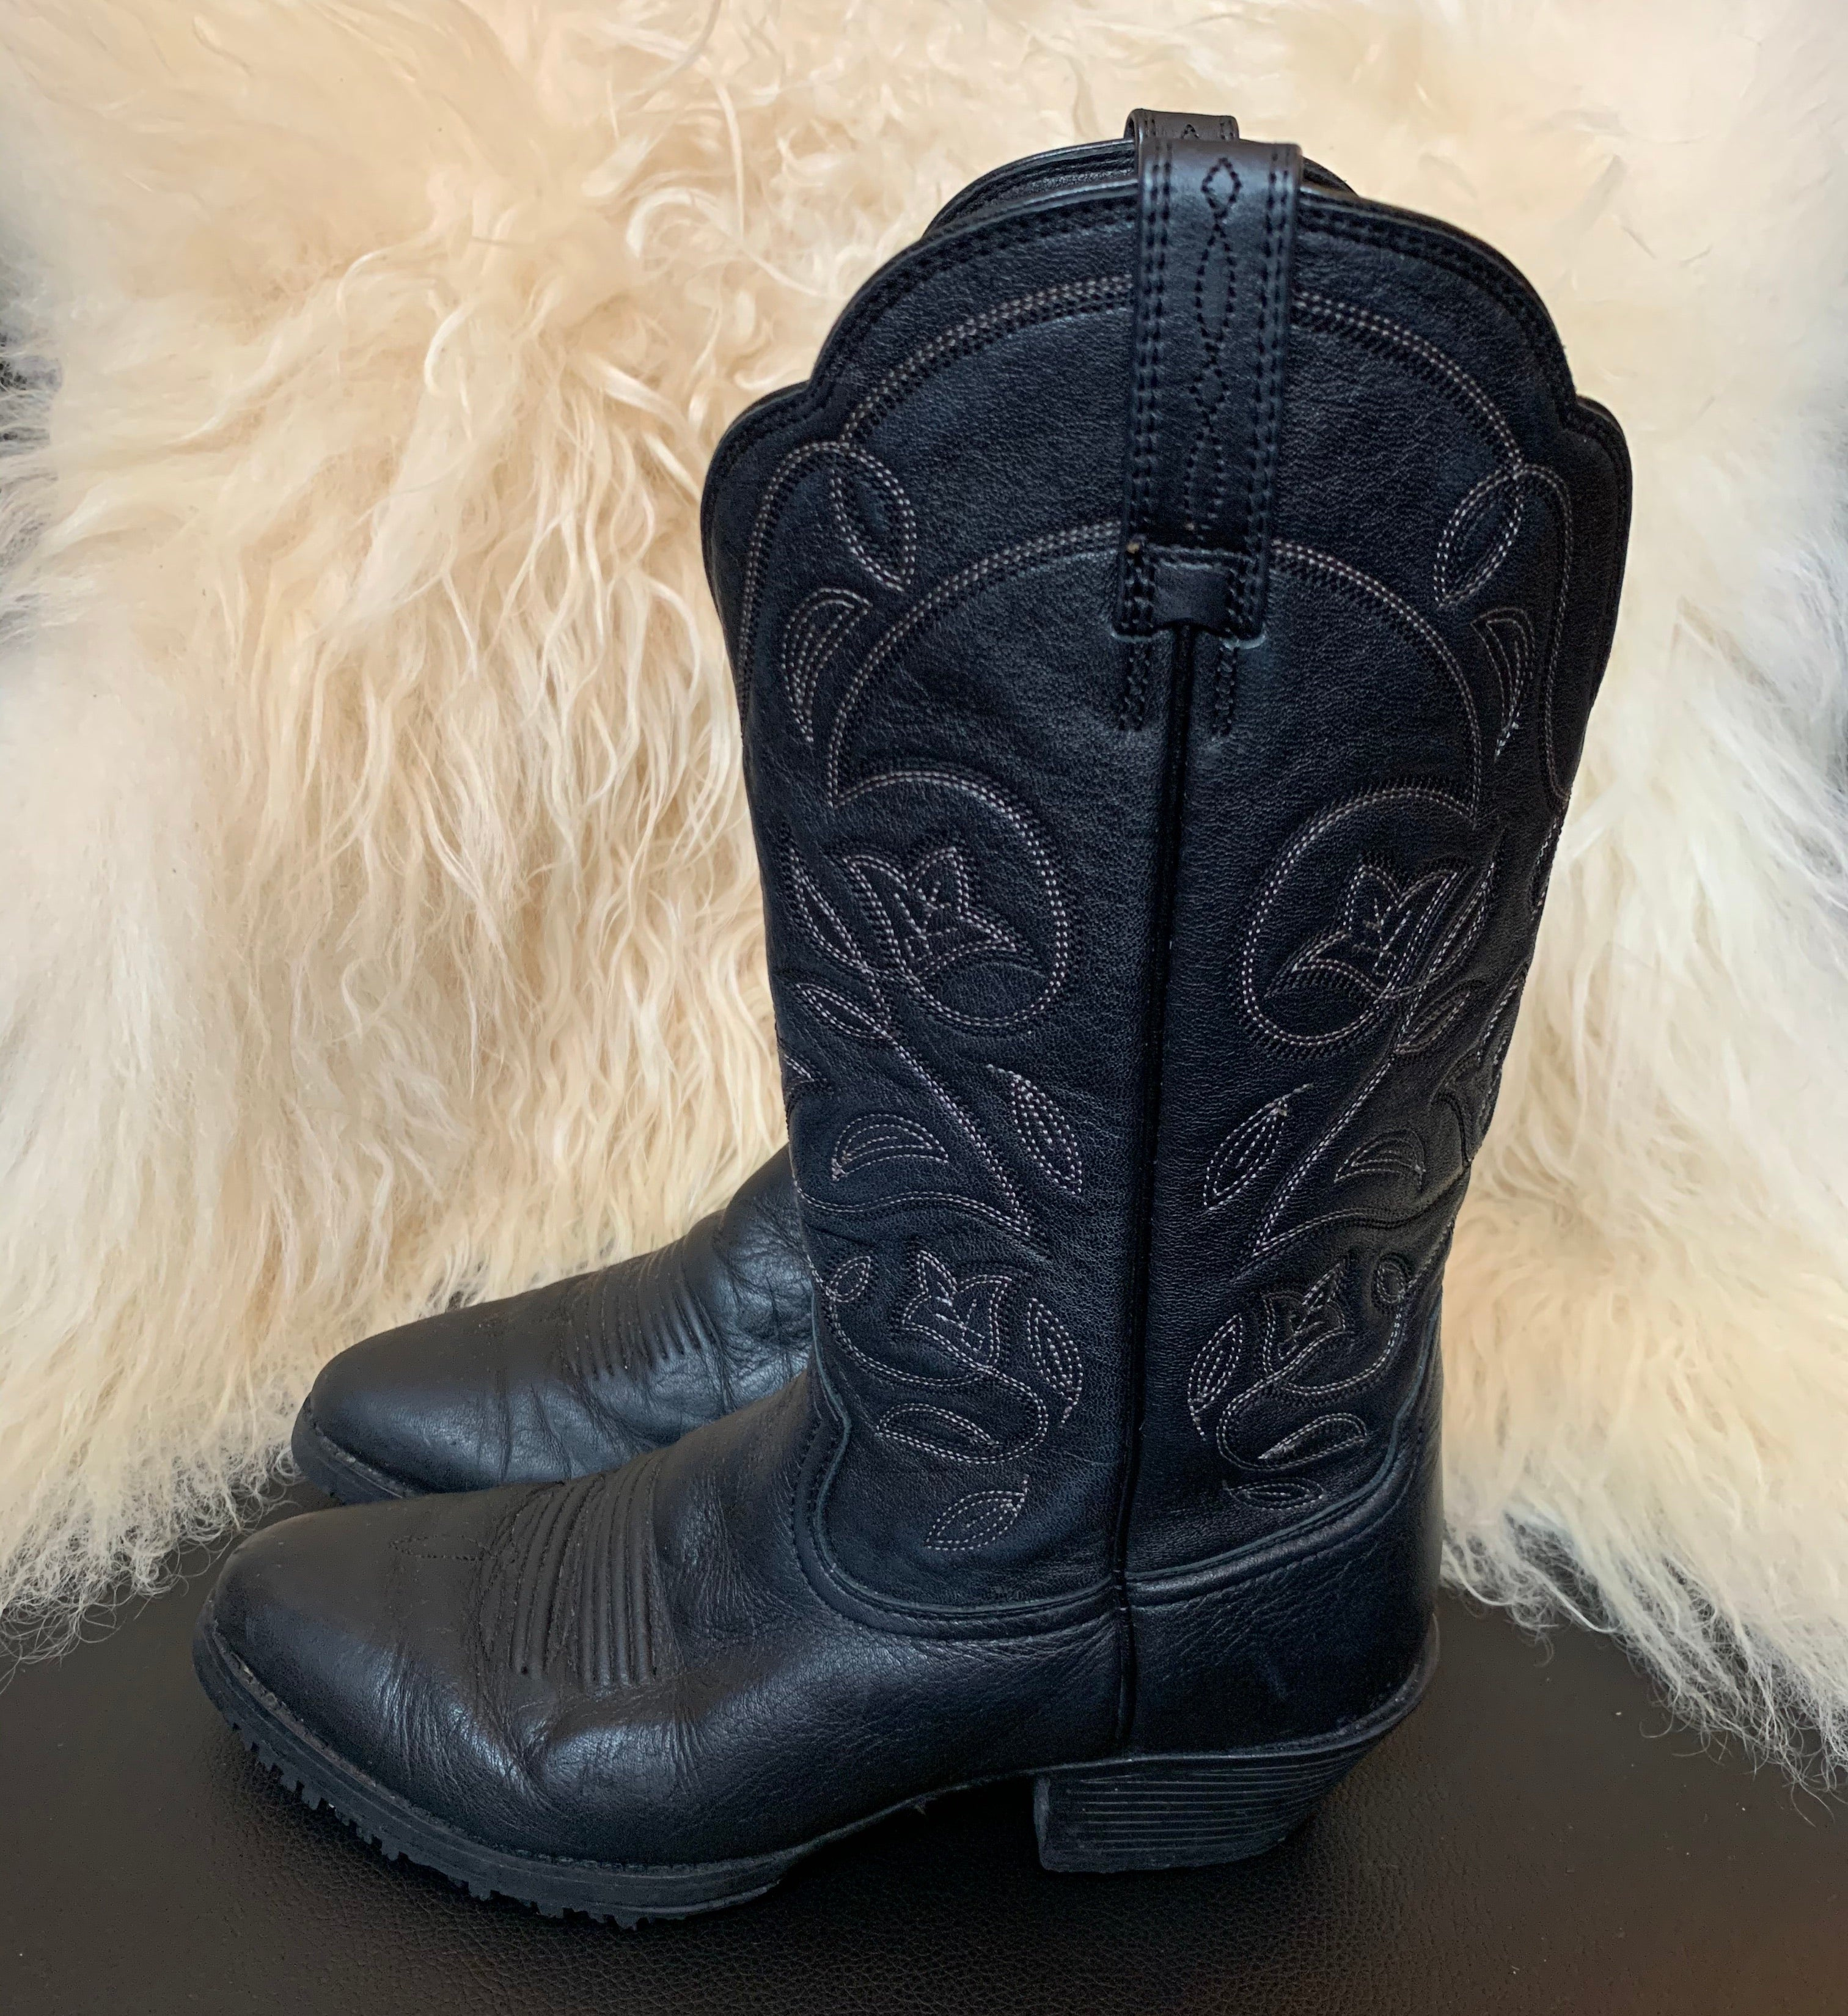 Black Ariat Cowboy Boots with Floral Motif